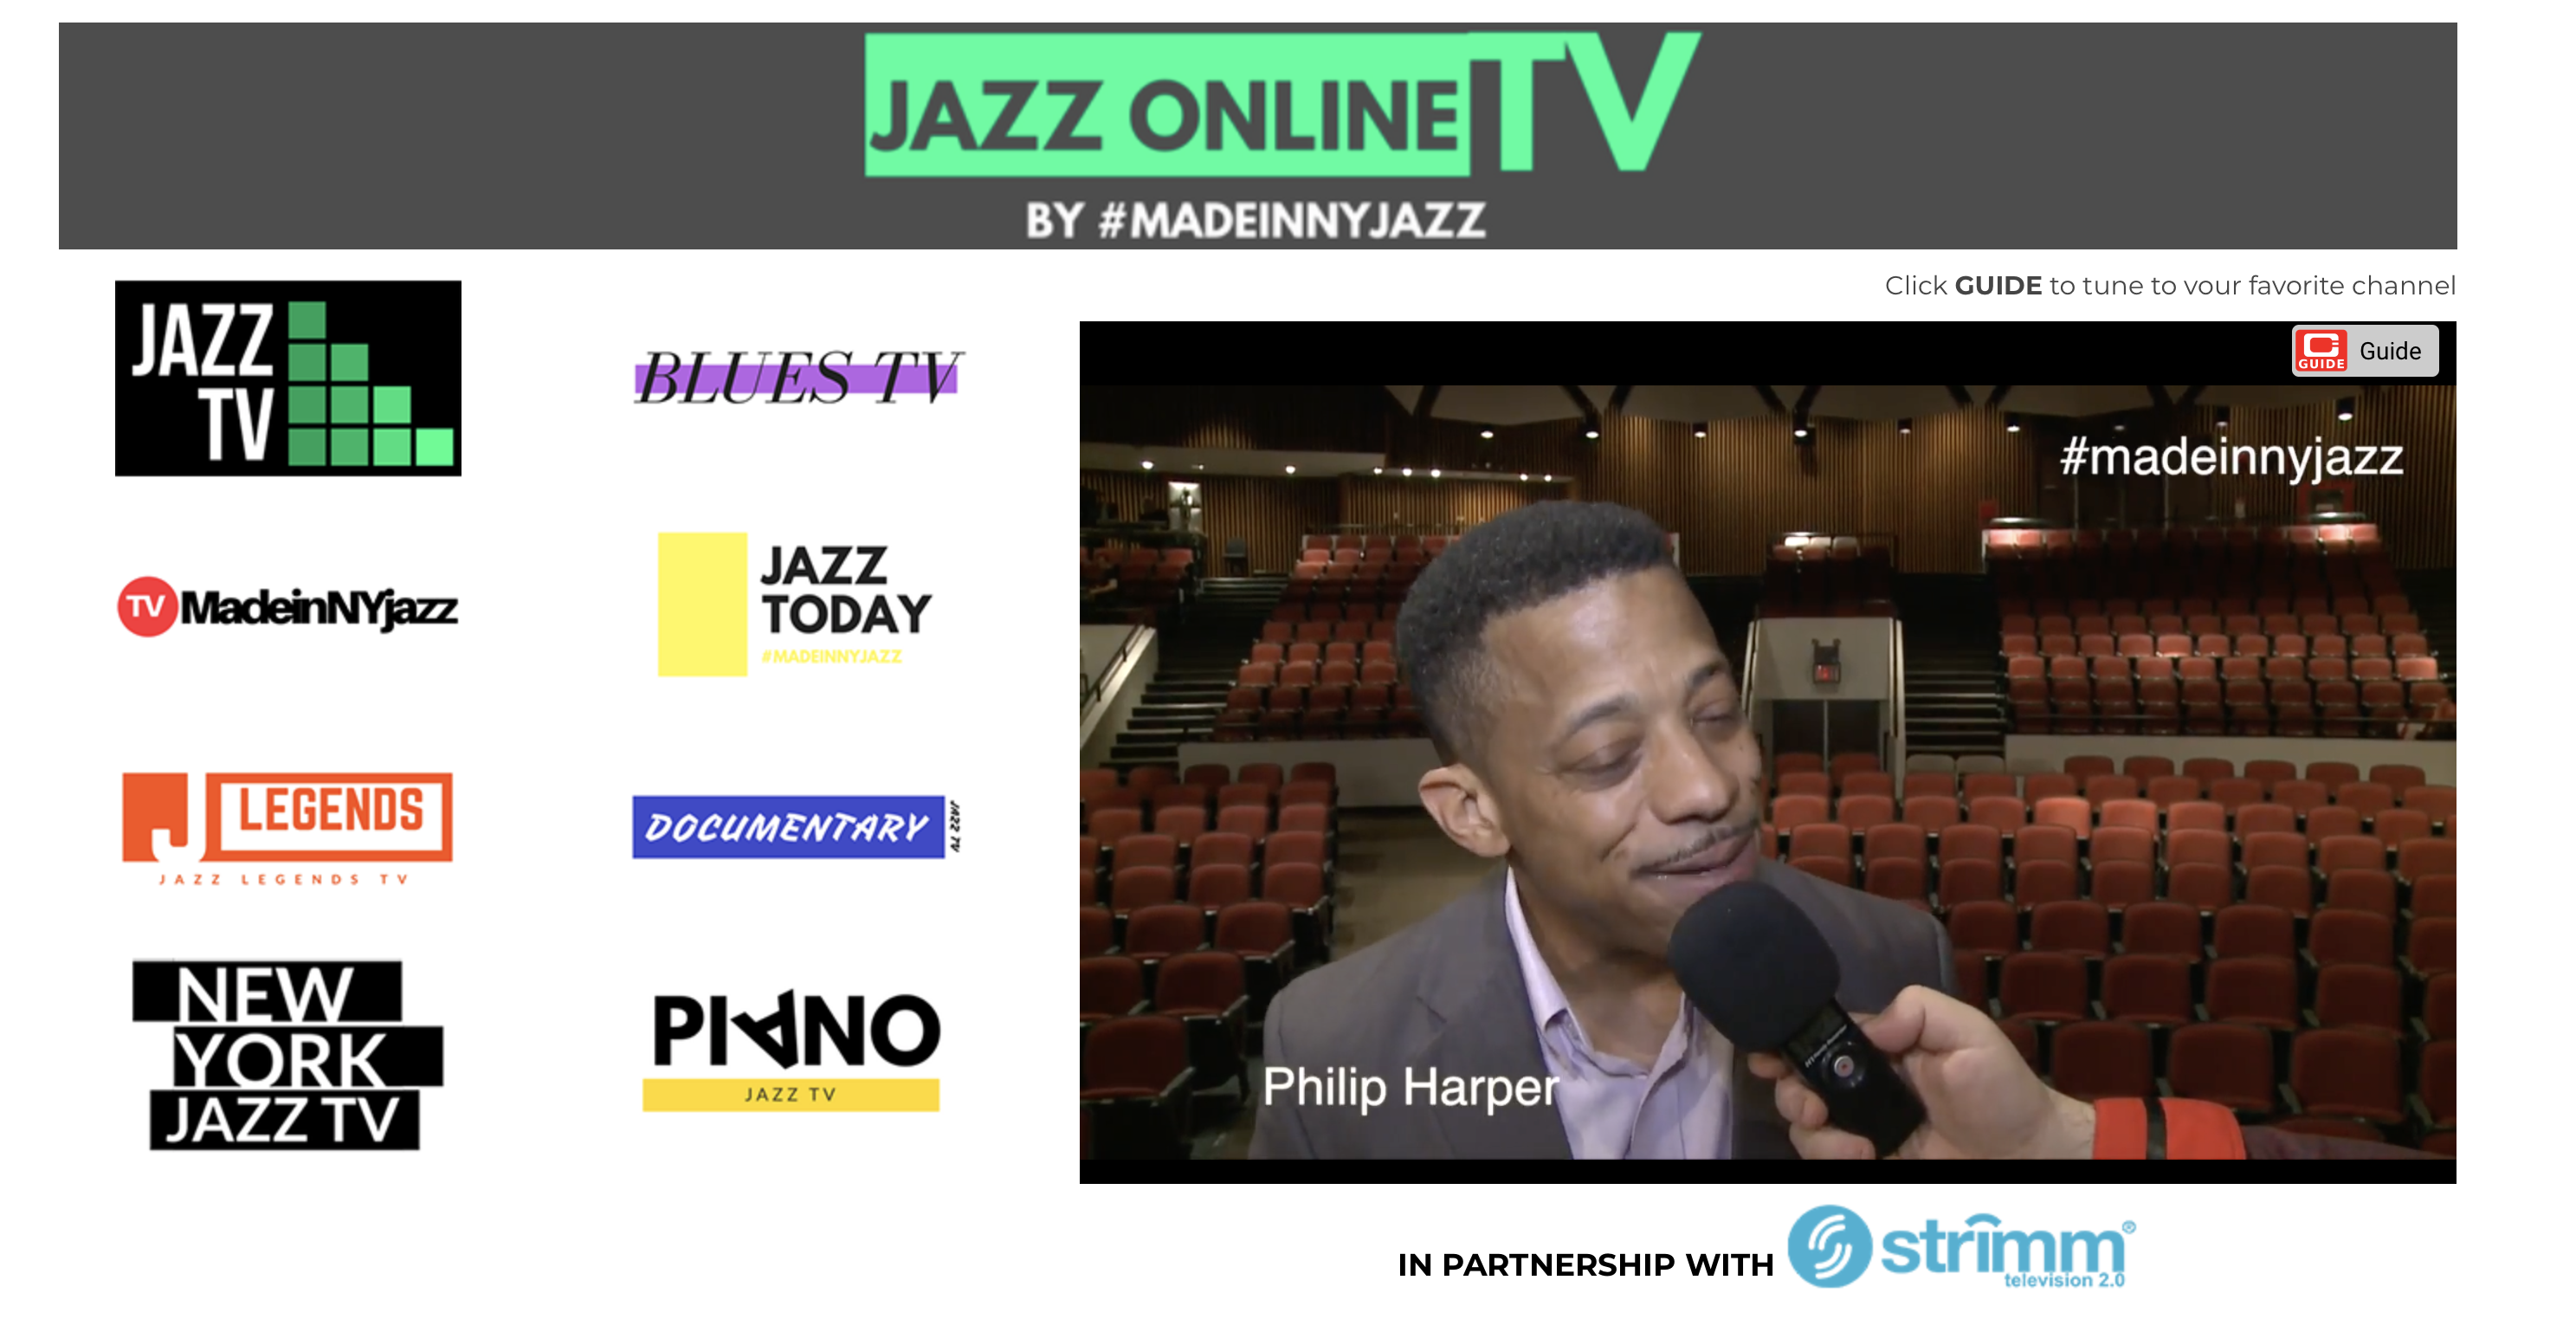 Made in New York Jazz Competition and Festival gives a Look into the